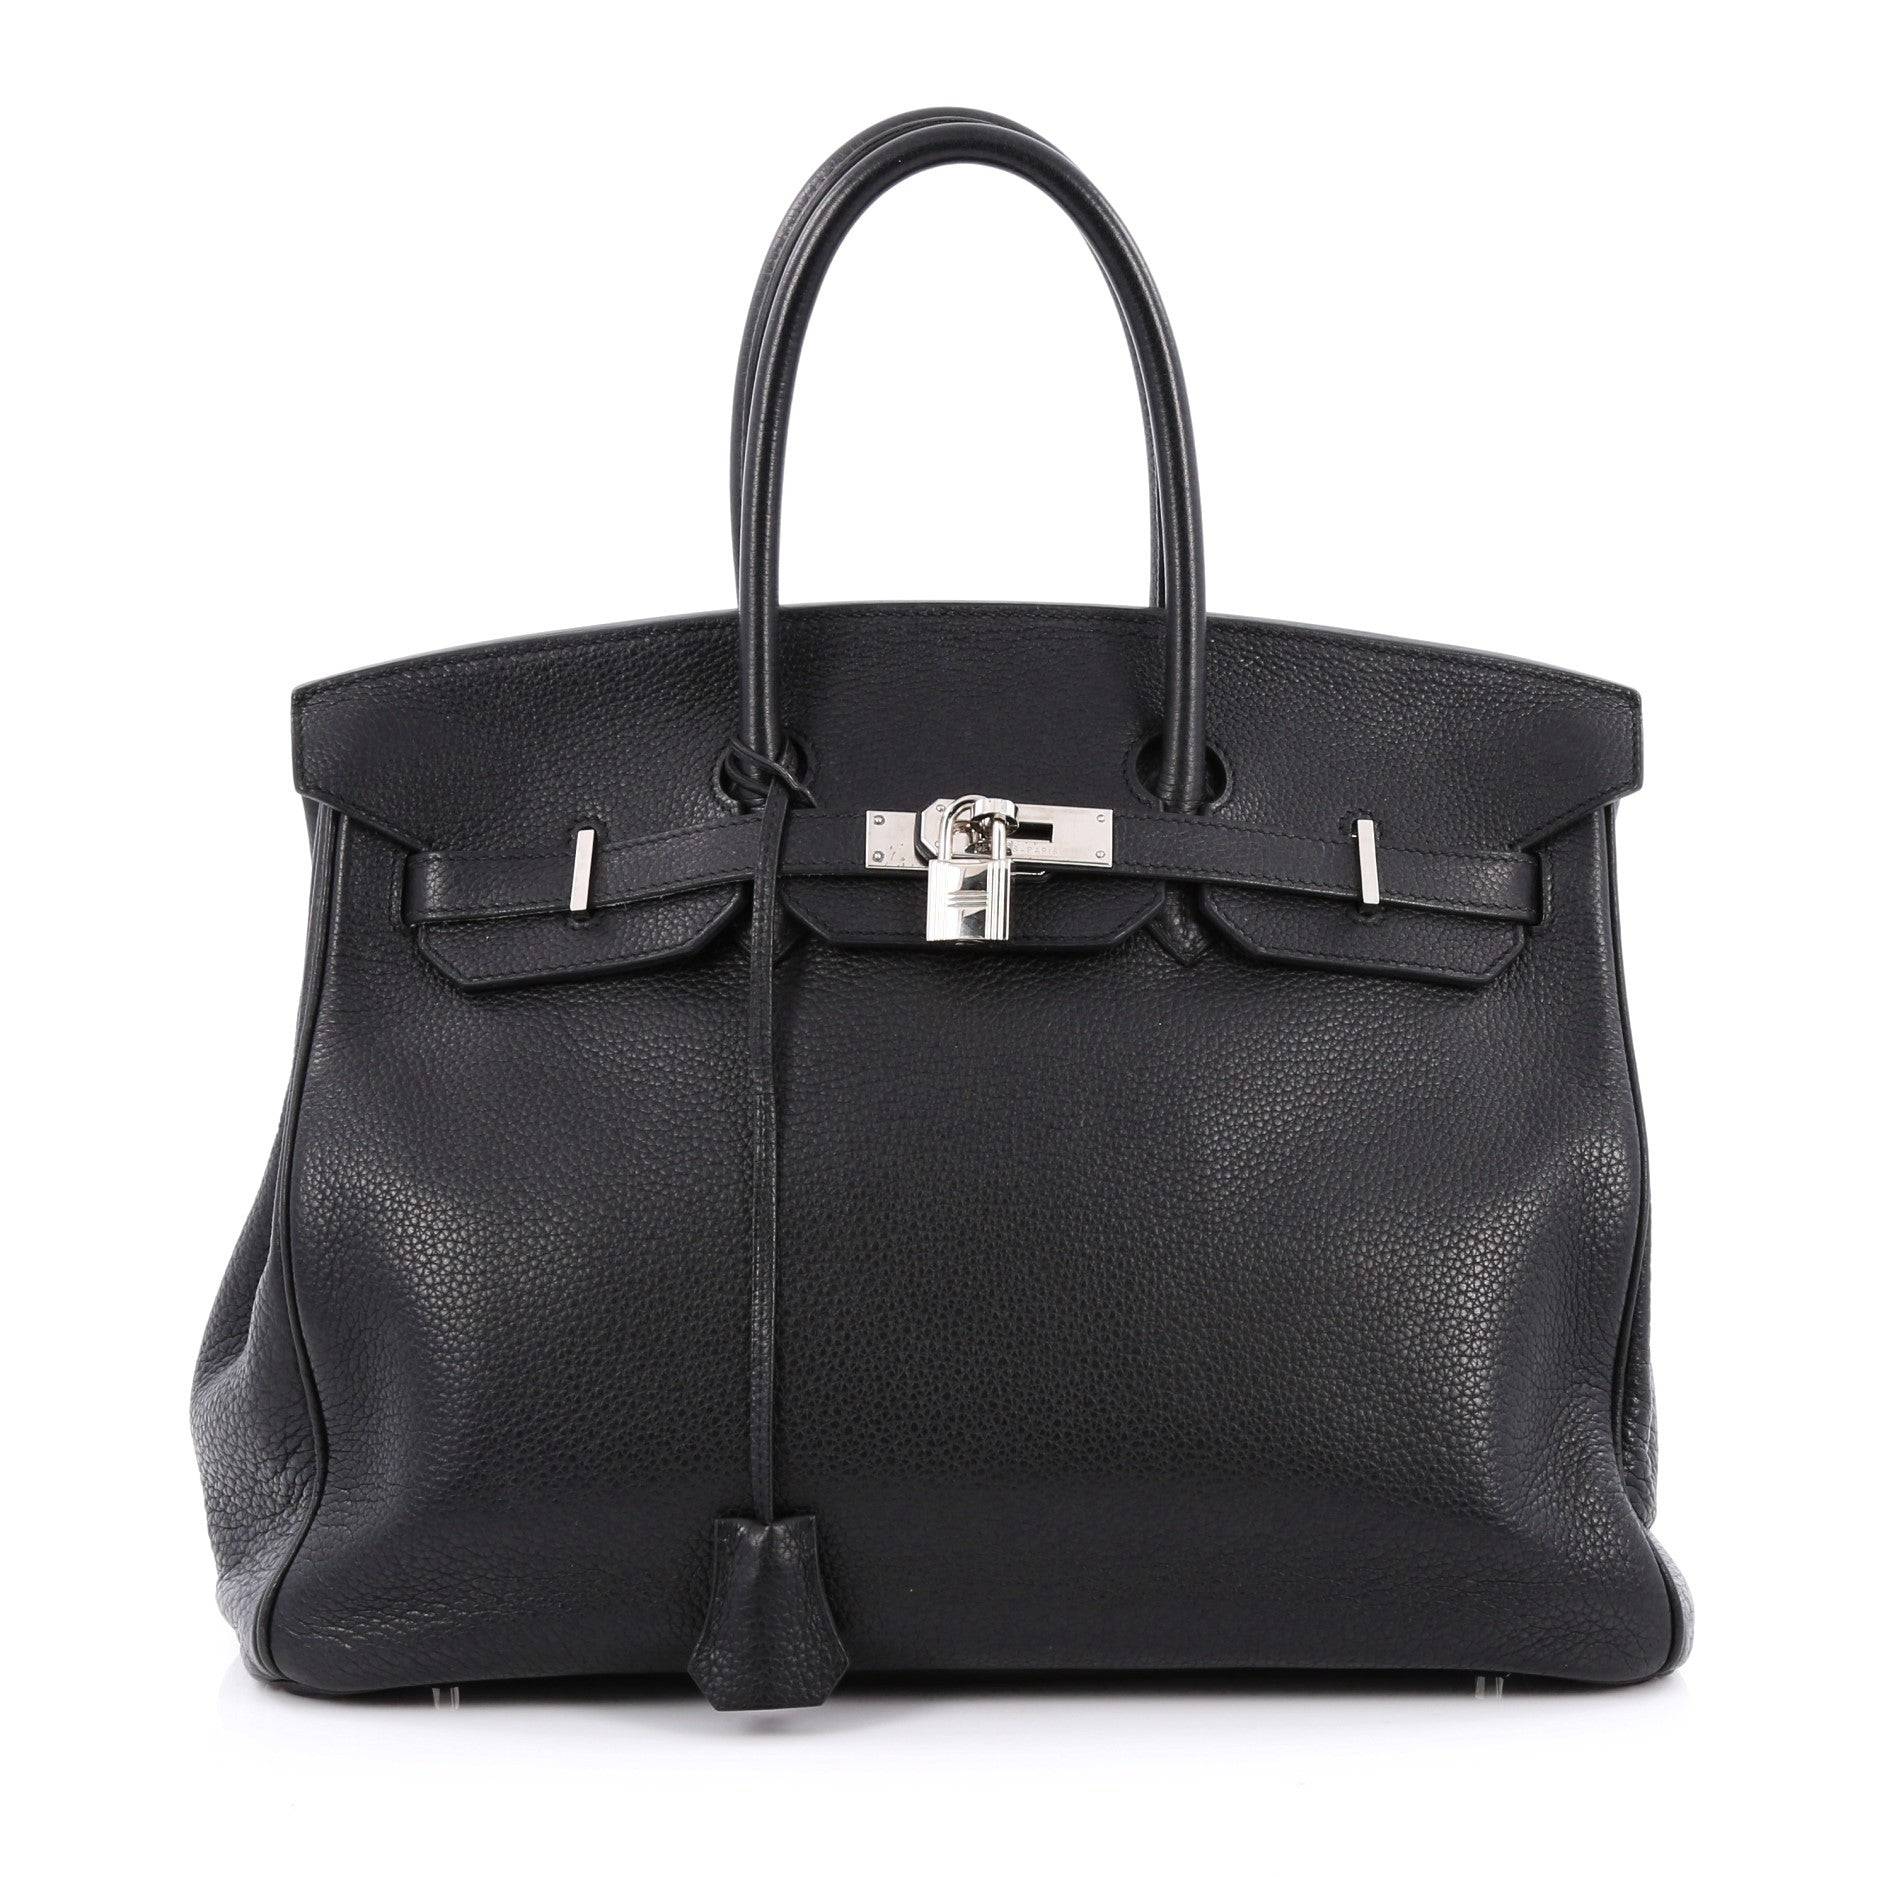 35085cc32f3 new hermes bags prices zac